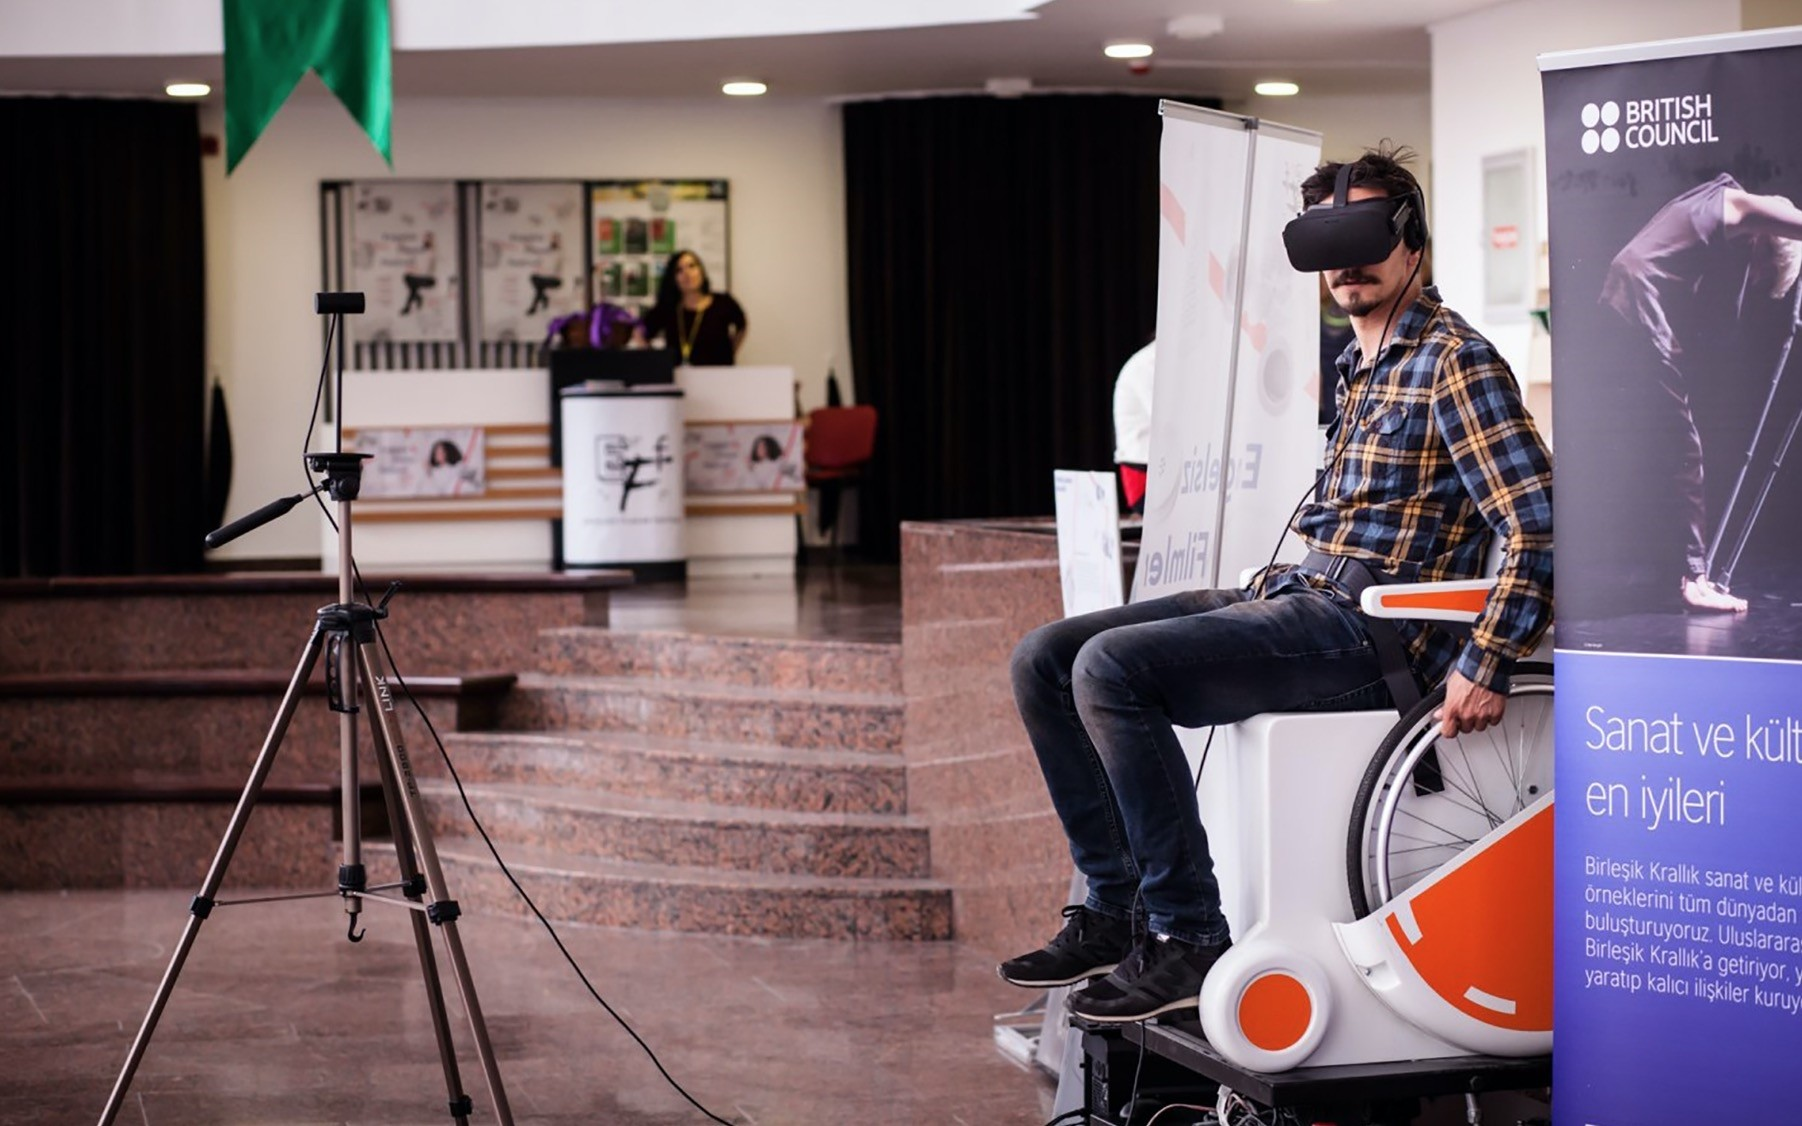 In VRability: Maxim Kiselev program, the audience will experience what it is like to ice-skate in a wheelchair.